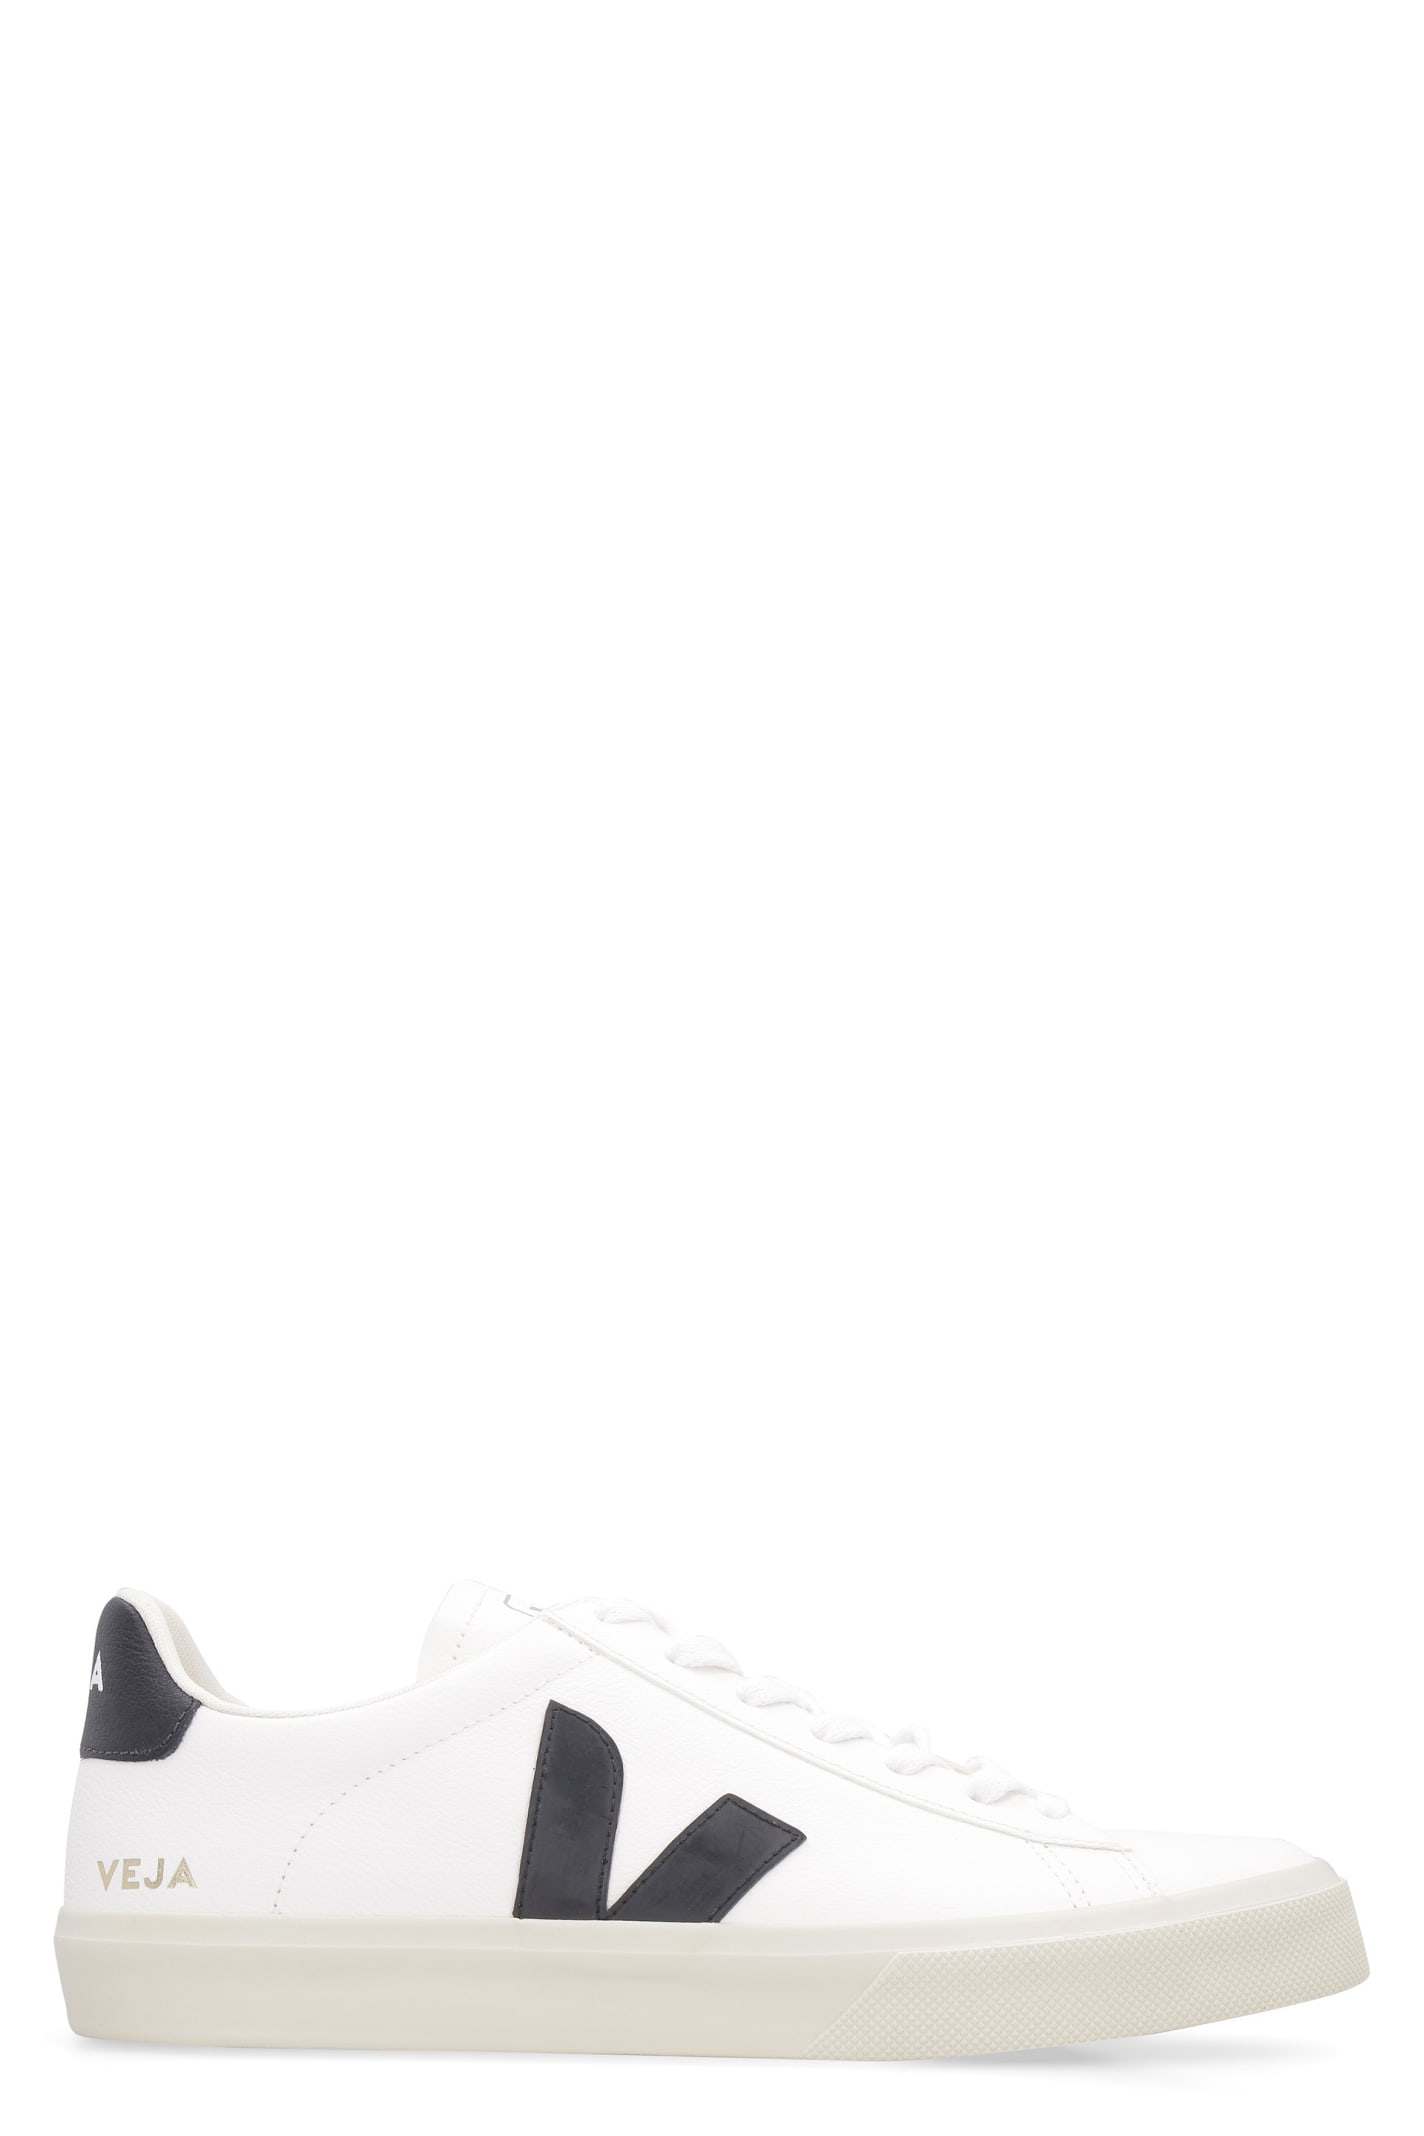 Veja Leathers CAMPO CHROMEFREE LOW-TOP SNEAKERS